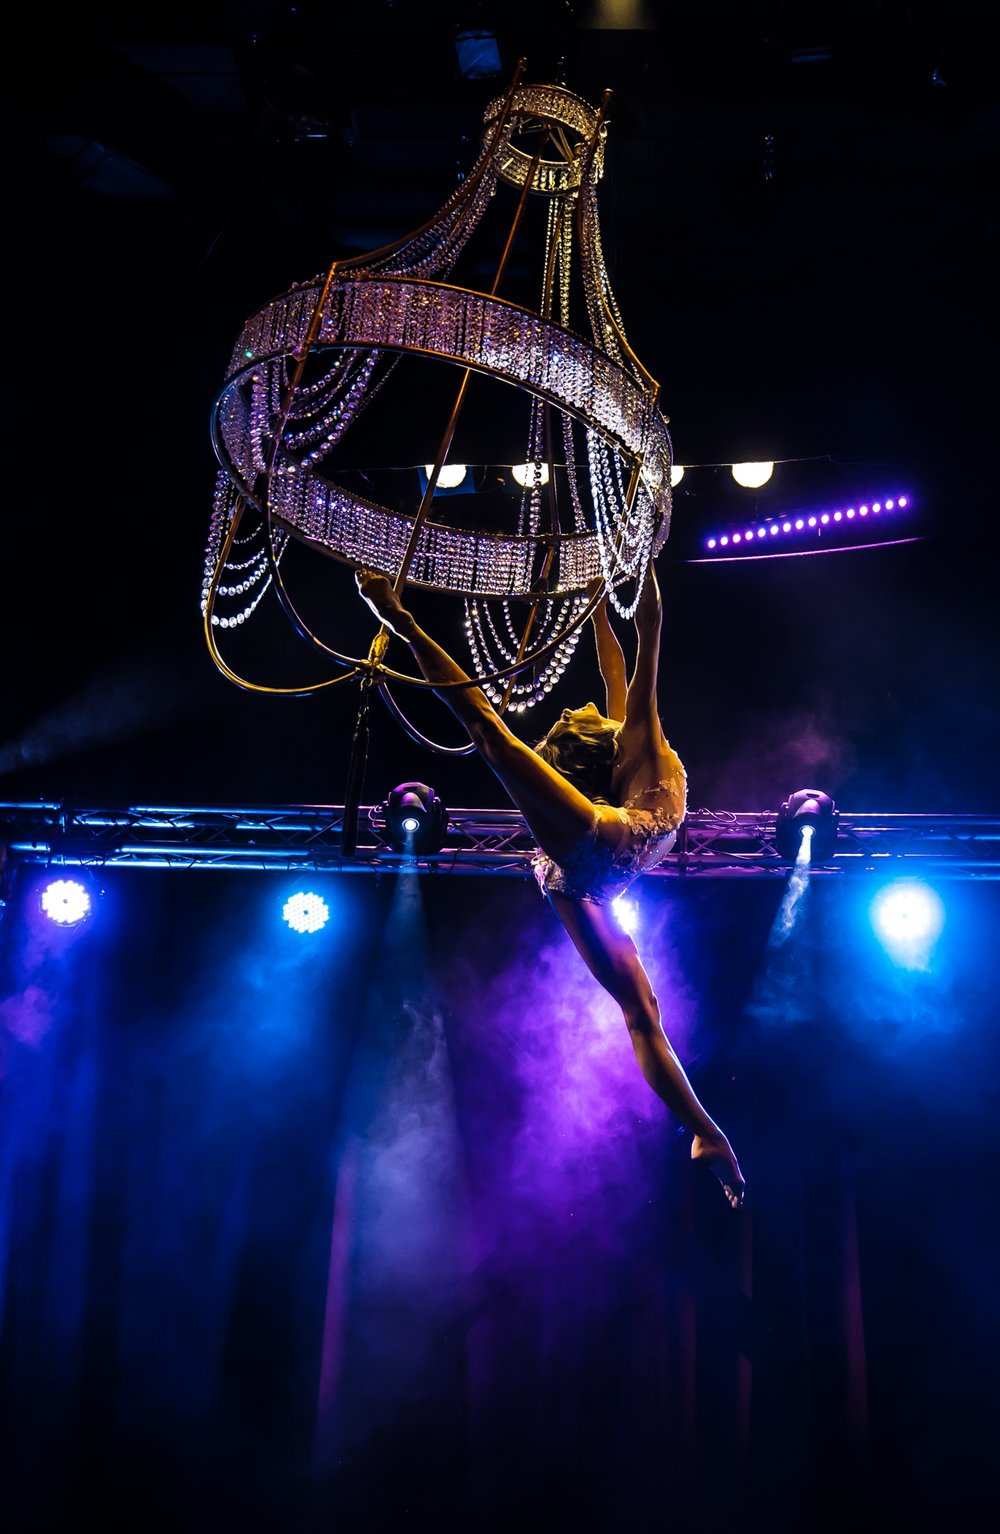 Supertalent luftartistin Air Candy - Flying Chandelier Showact - Aerial Chandelier  - Luftakrobatik Kronleuchter